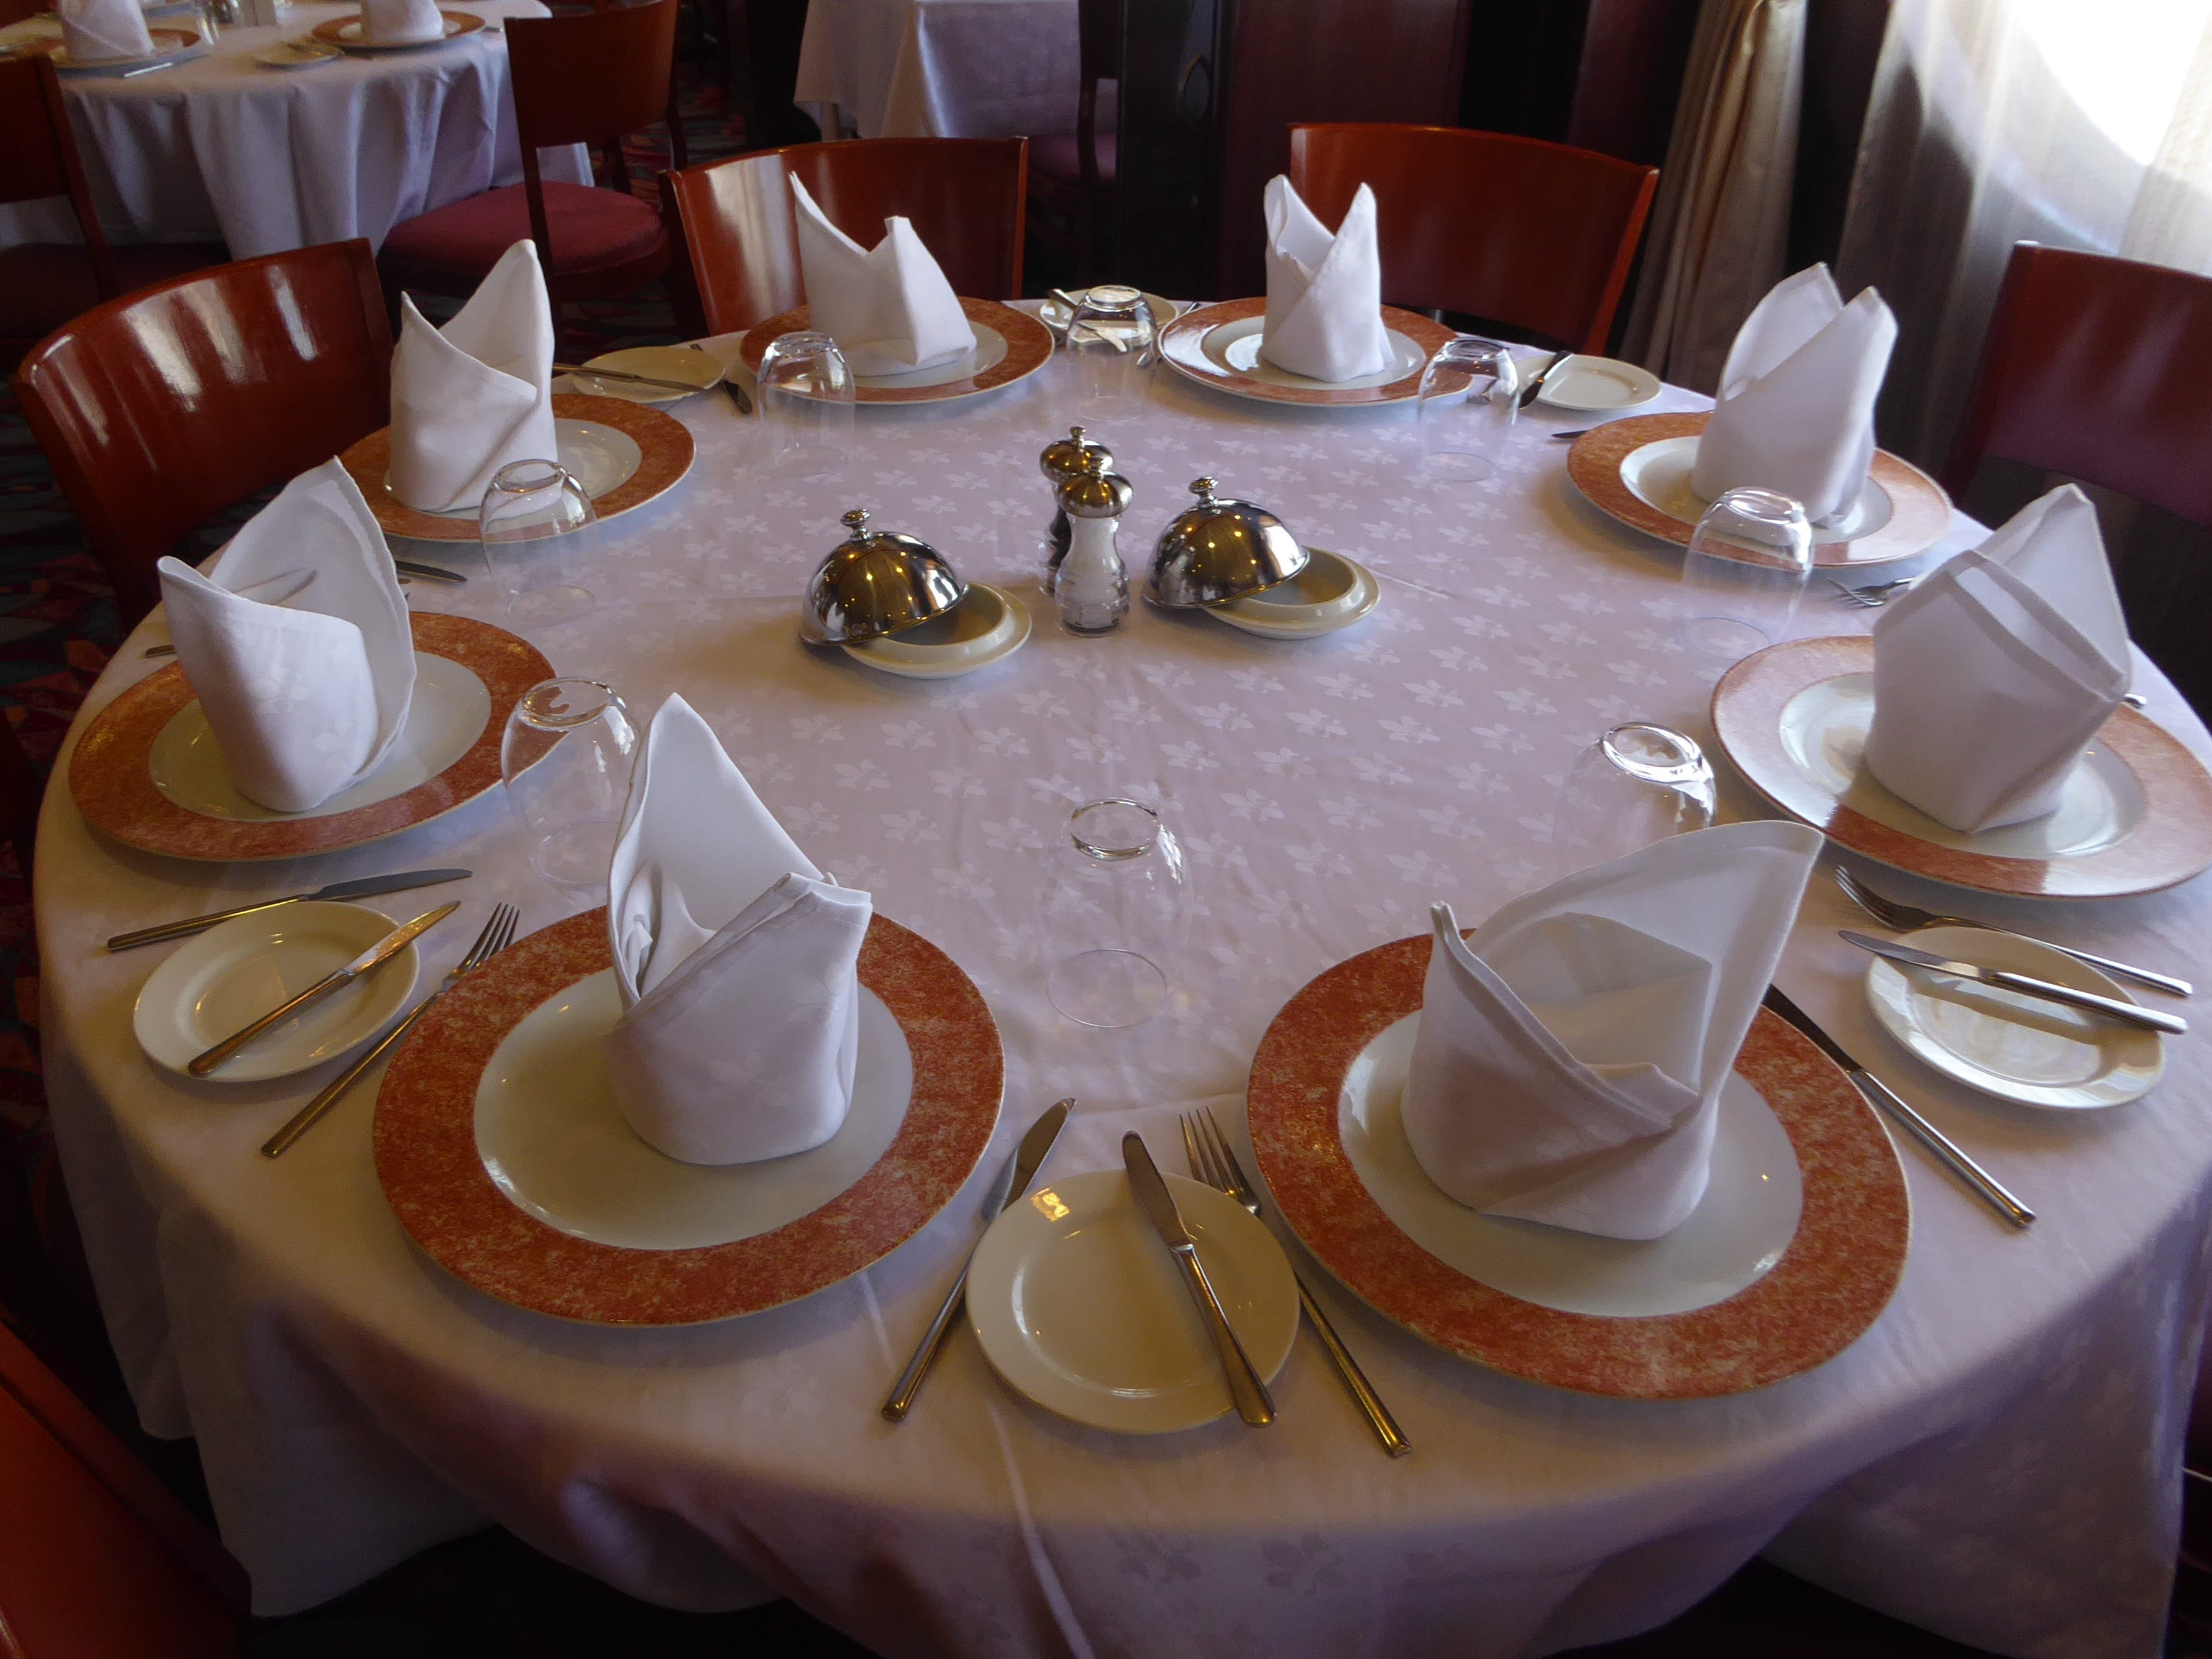 This is a table setting in Admiral's Steak and Seafood restaurant.